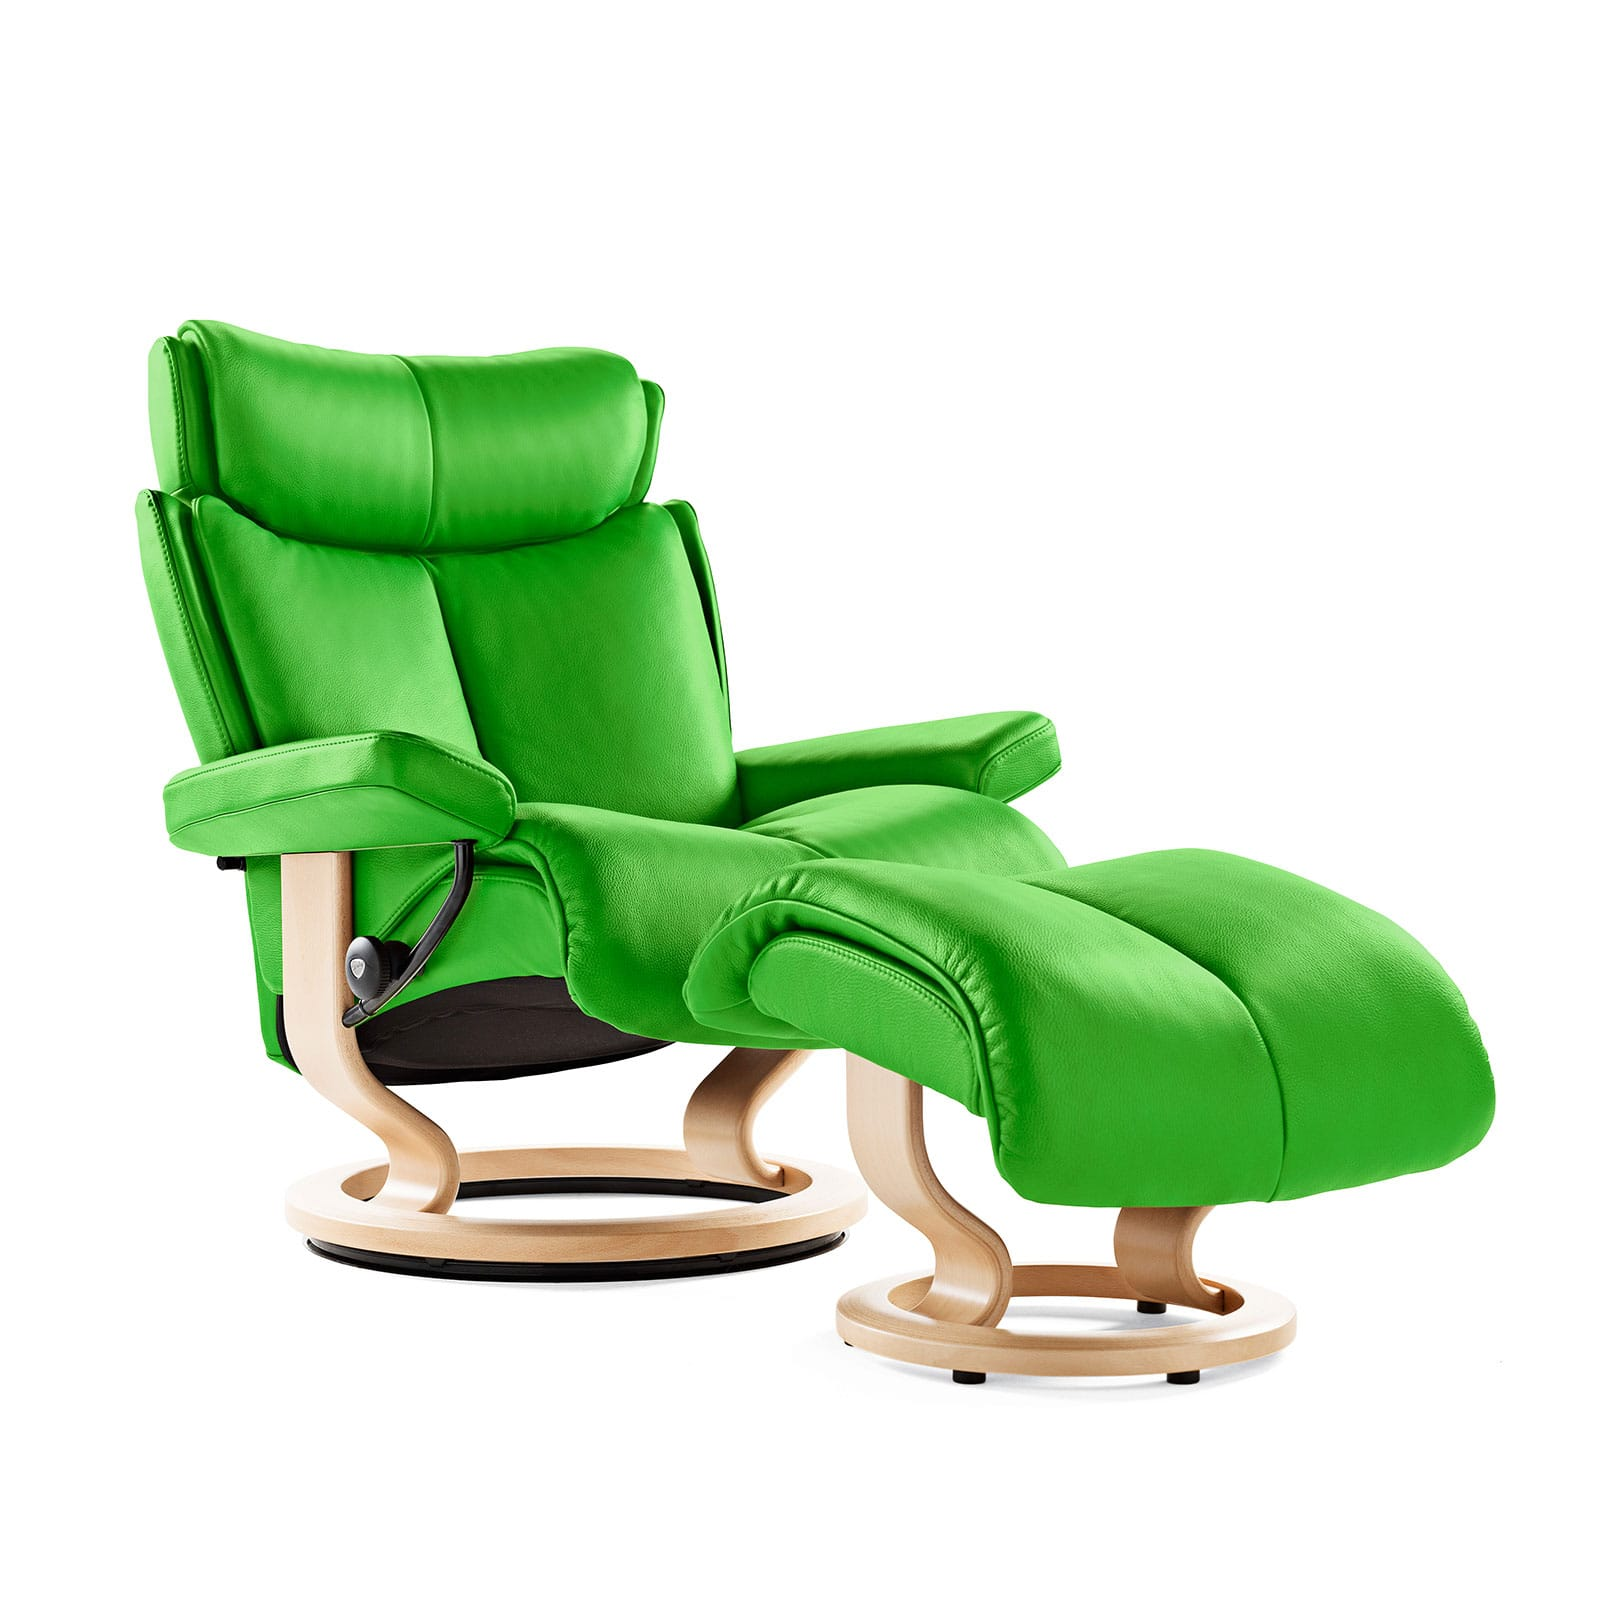 Stressless Sessel Preise Stressless Sessel Preise Sessel Stressless Magic Sessel